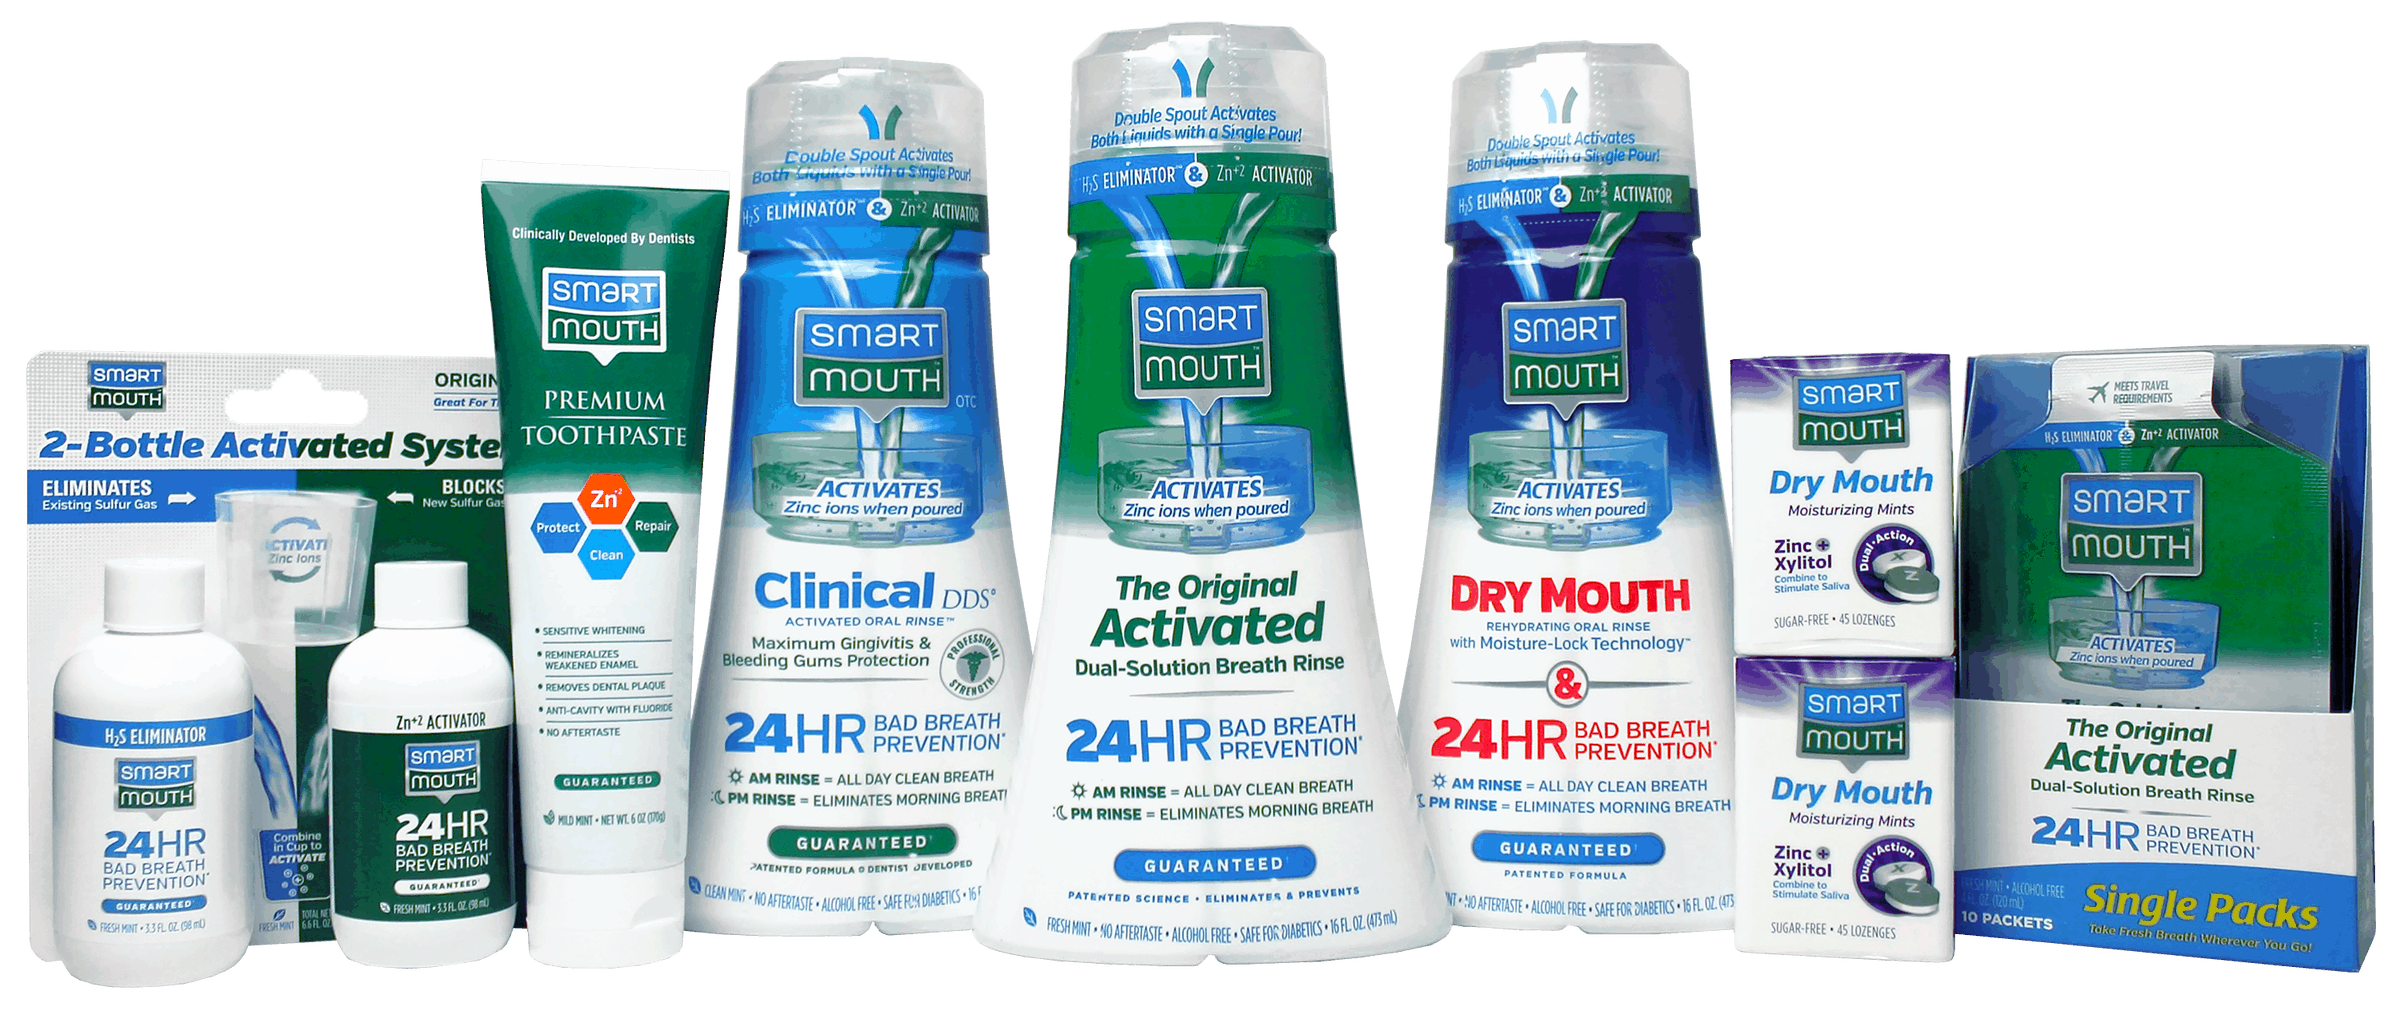 All SmartMouth products